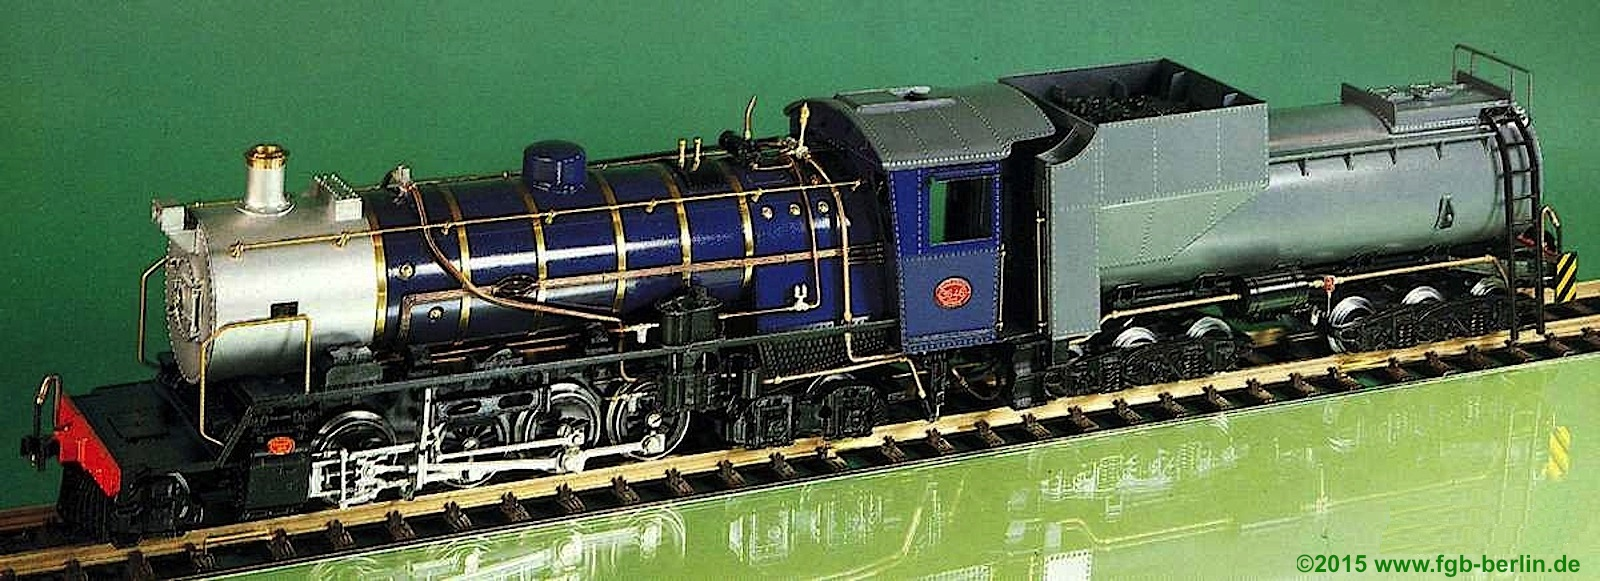 Magnus South African Railways Dampflokomotive, (Steam Locomotive) Class 24